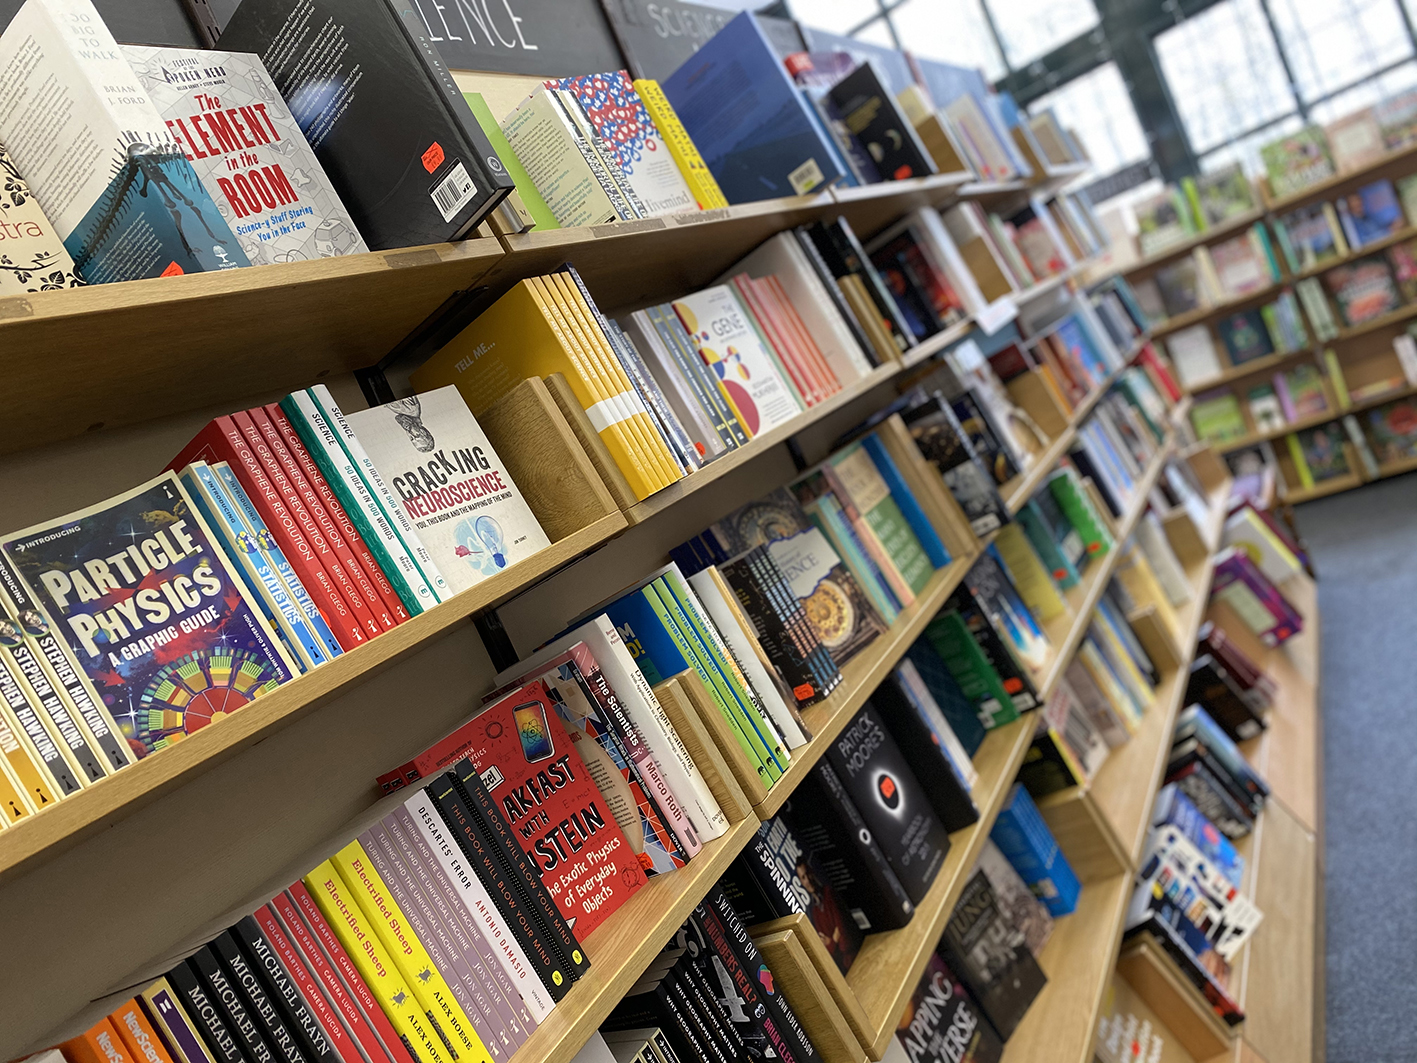 Image of bookstore shelf filled with books.